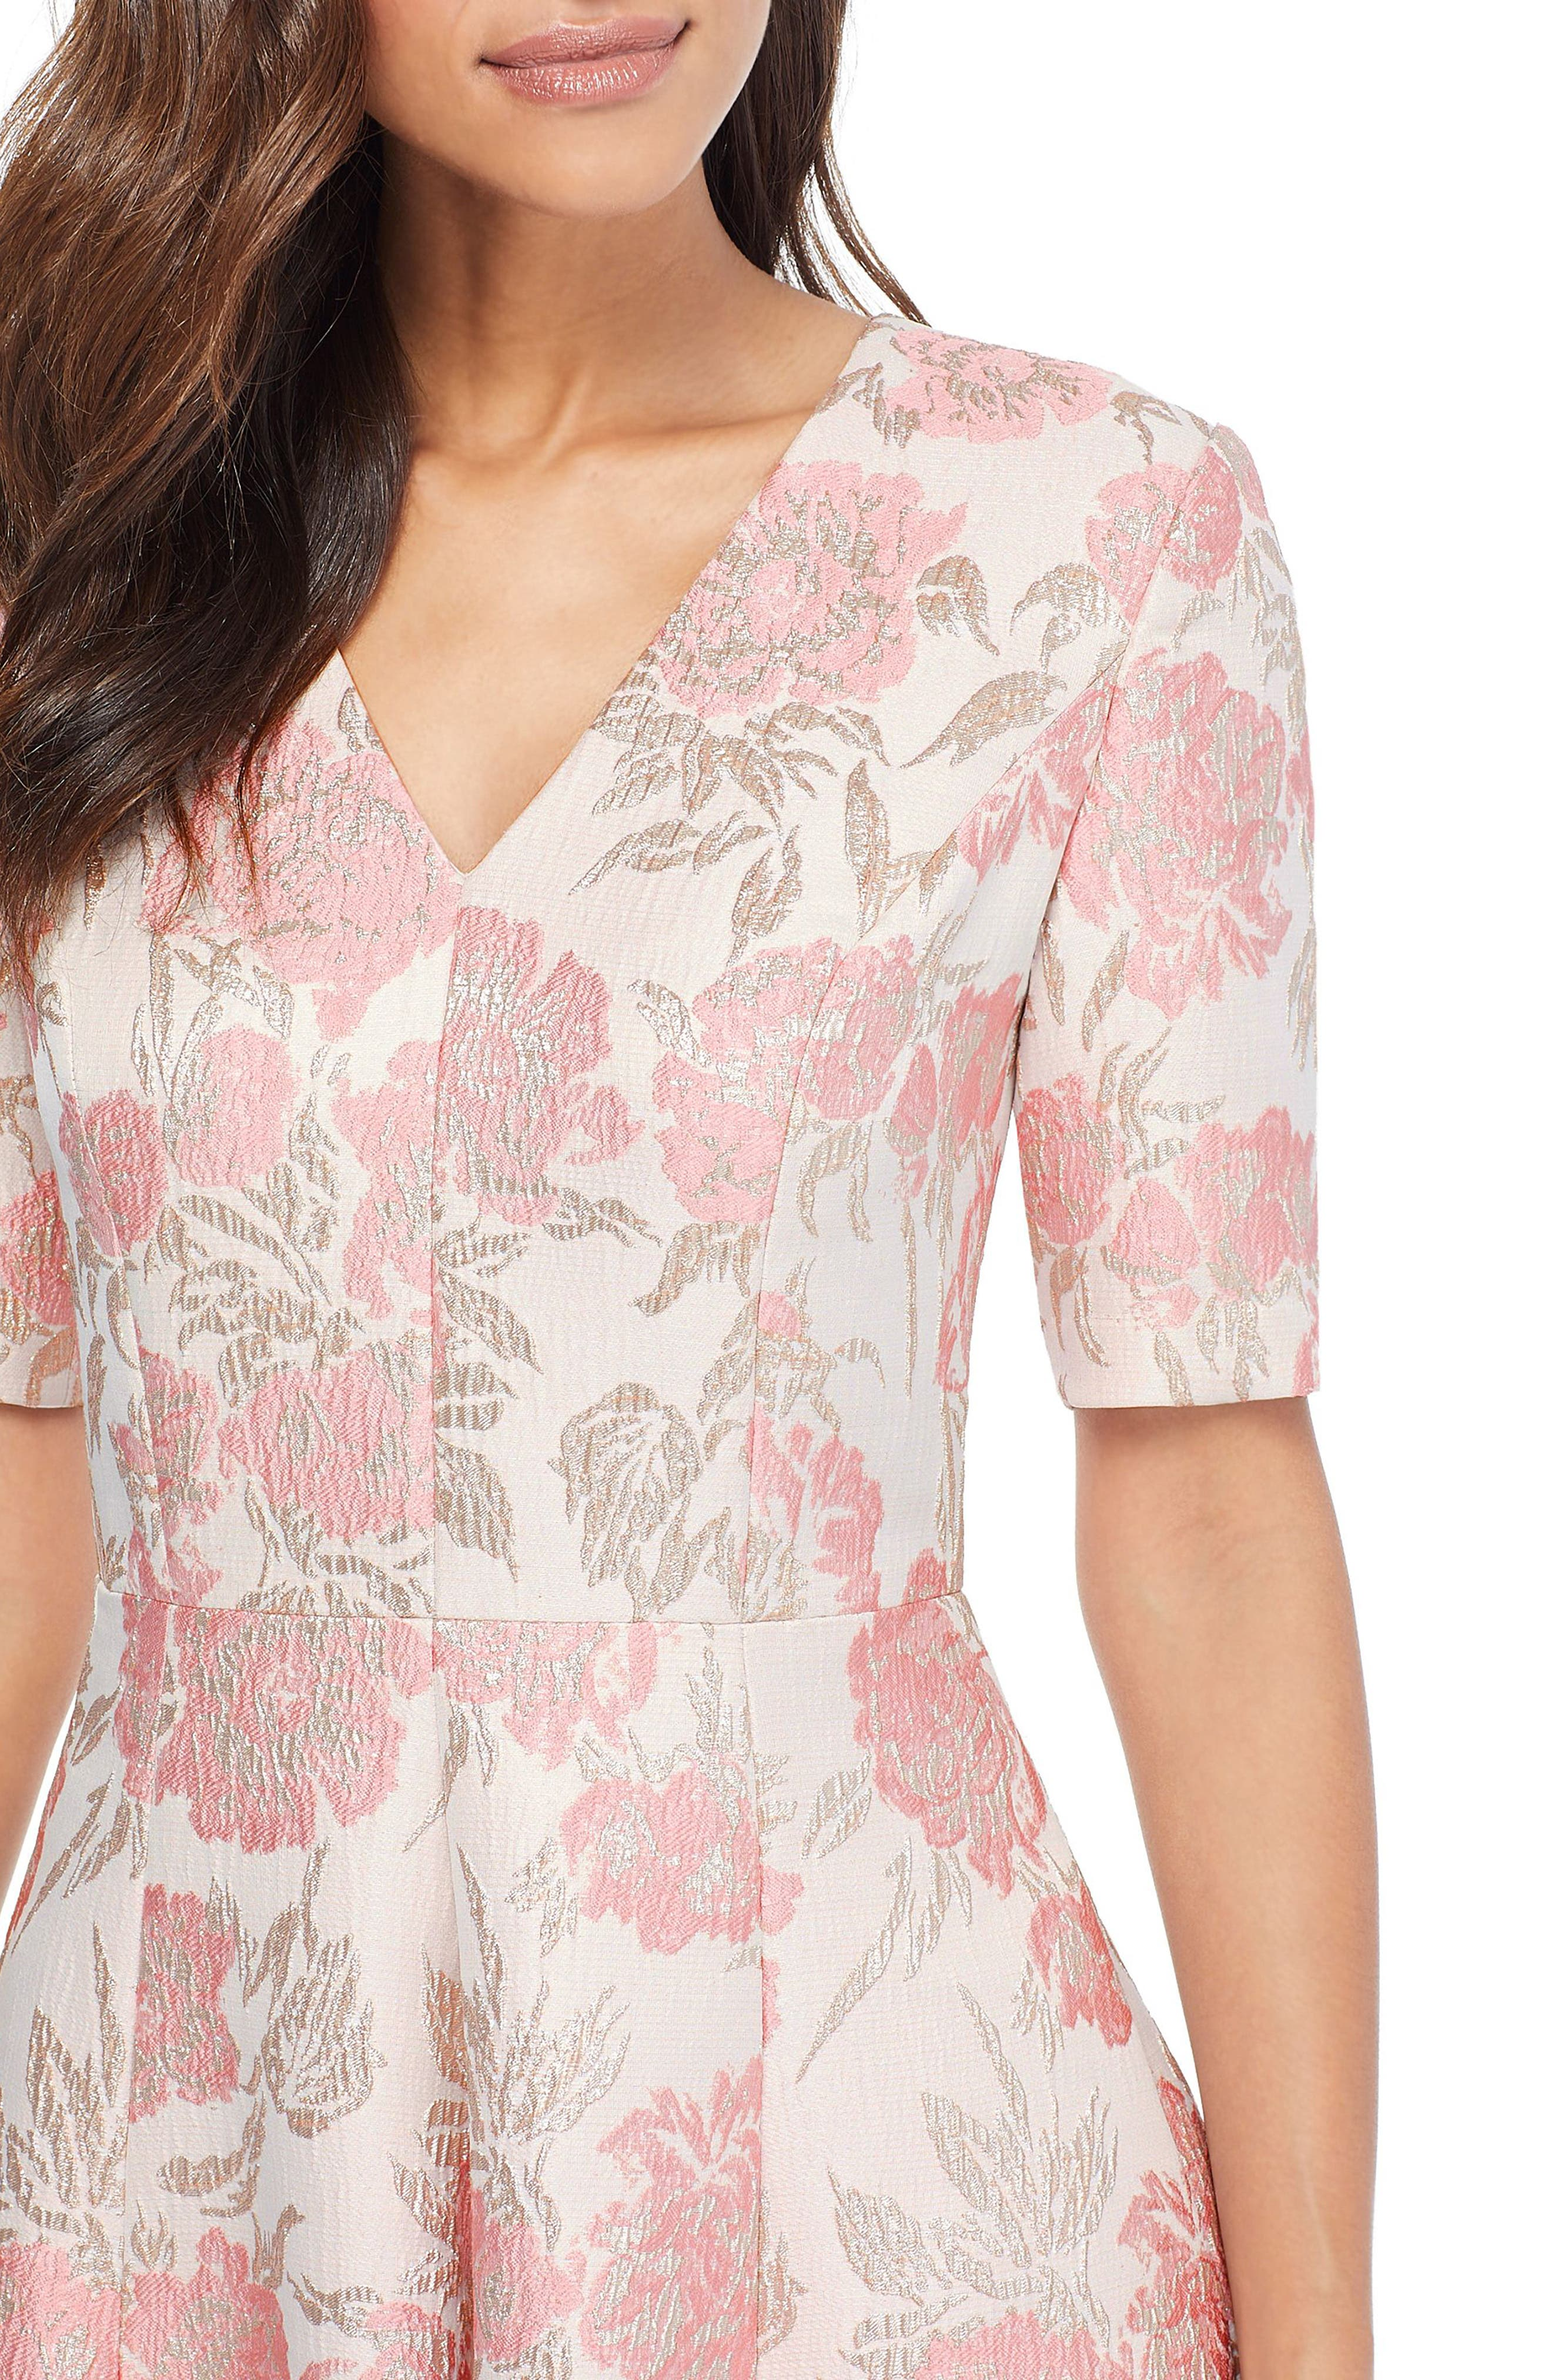 GAL MEETS GLAM COLLECTION, Adair Pink Passion Rose Jacquard Fit & Flare Dress, Alternate thumbnail 5, color, 685